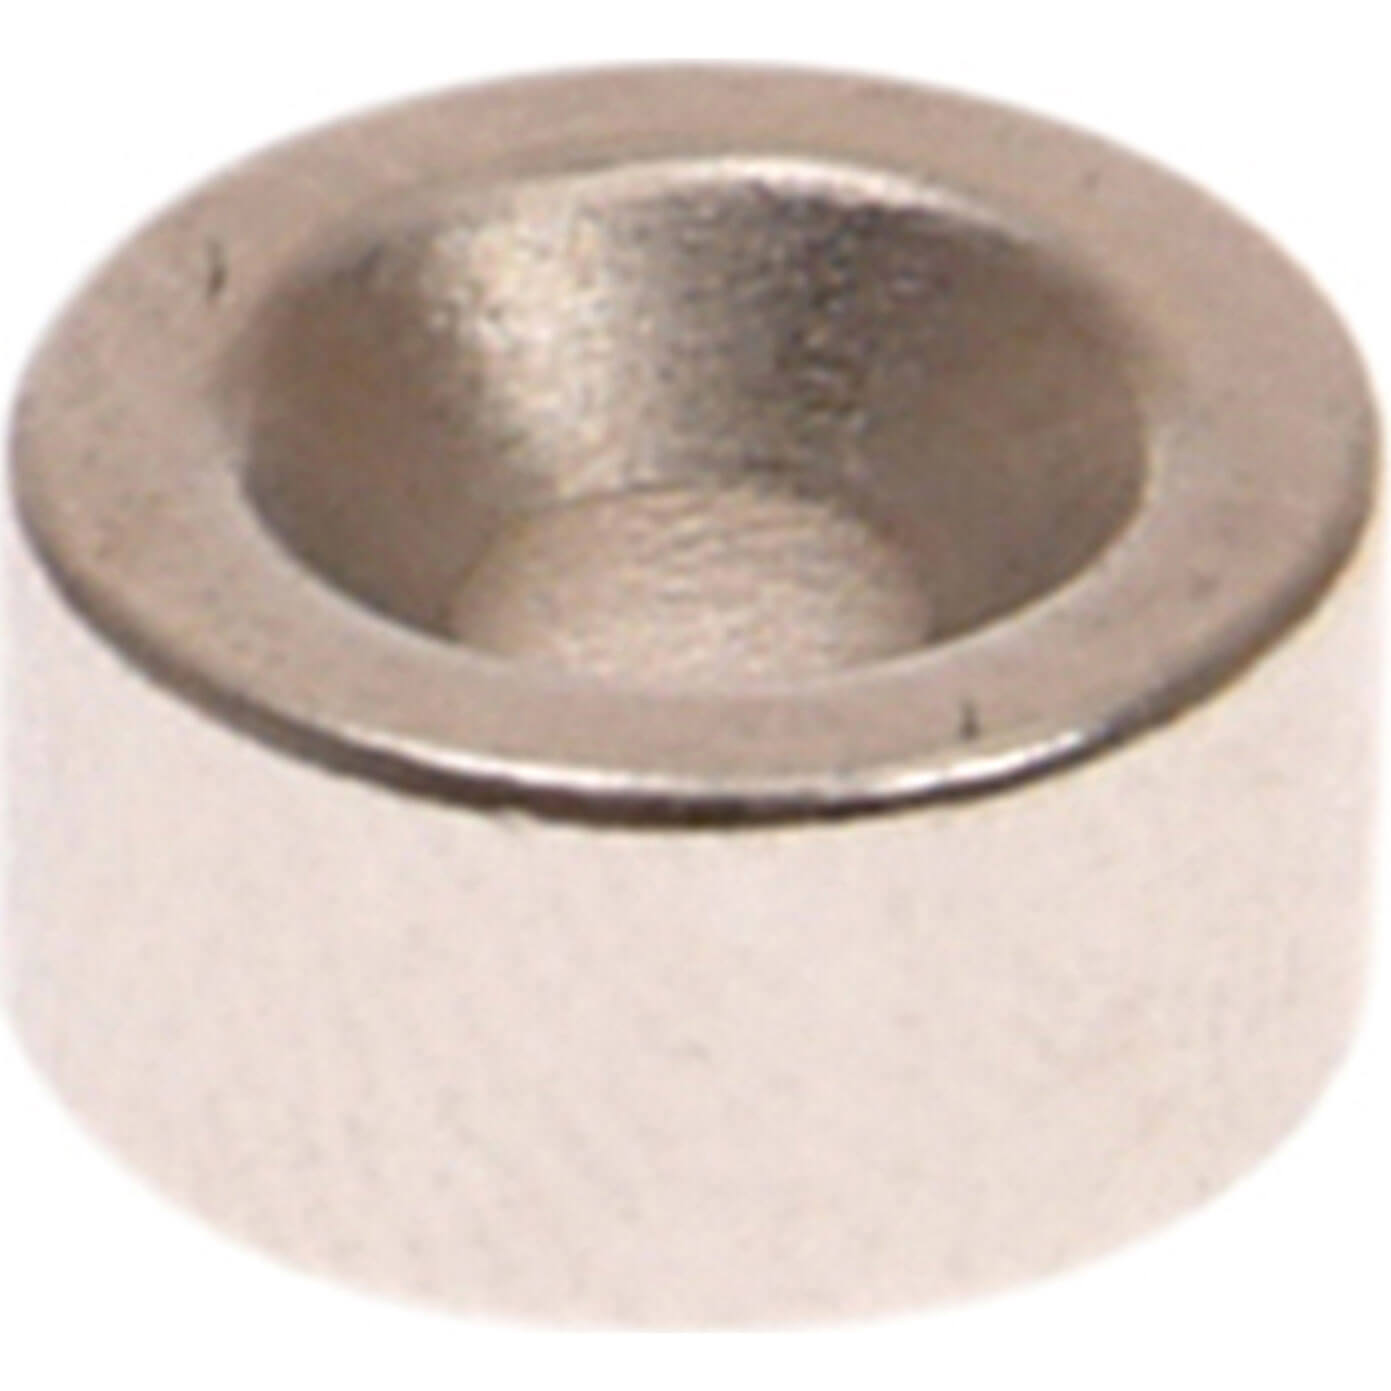 Image of E Magnet 301A Countersunk Magnets 10mm Pack of 2